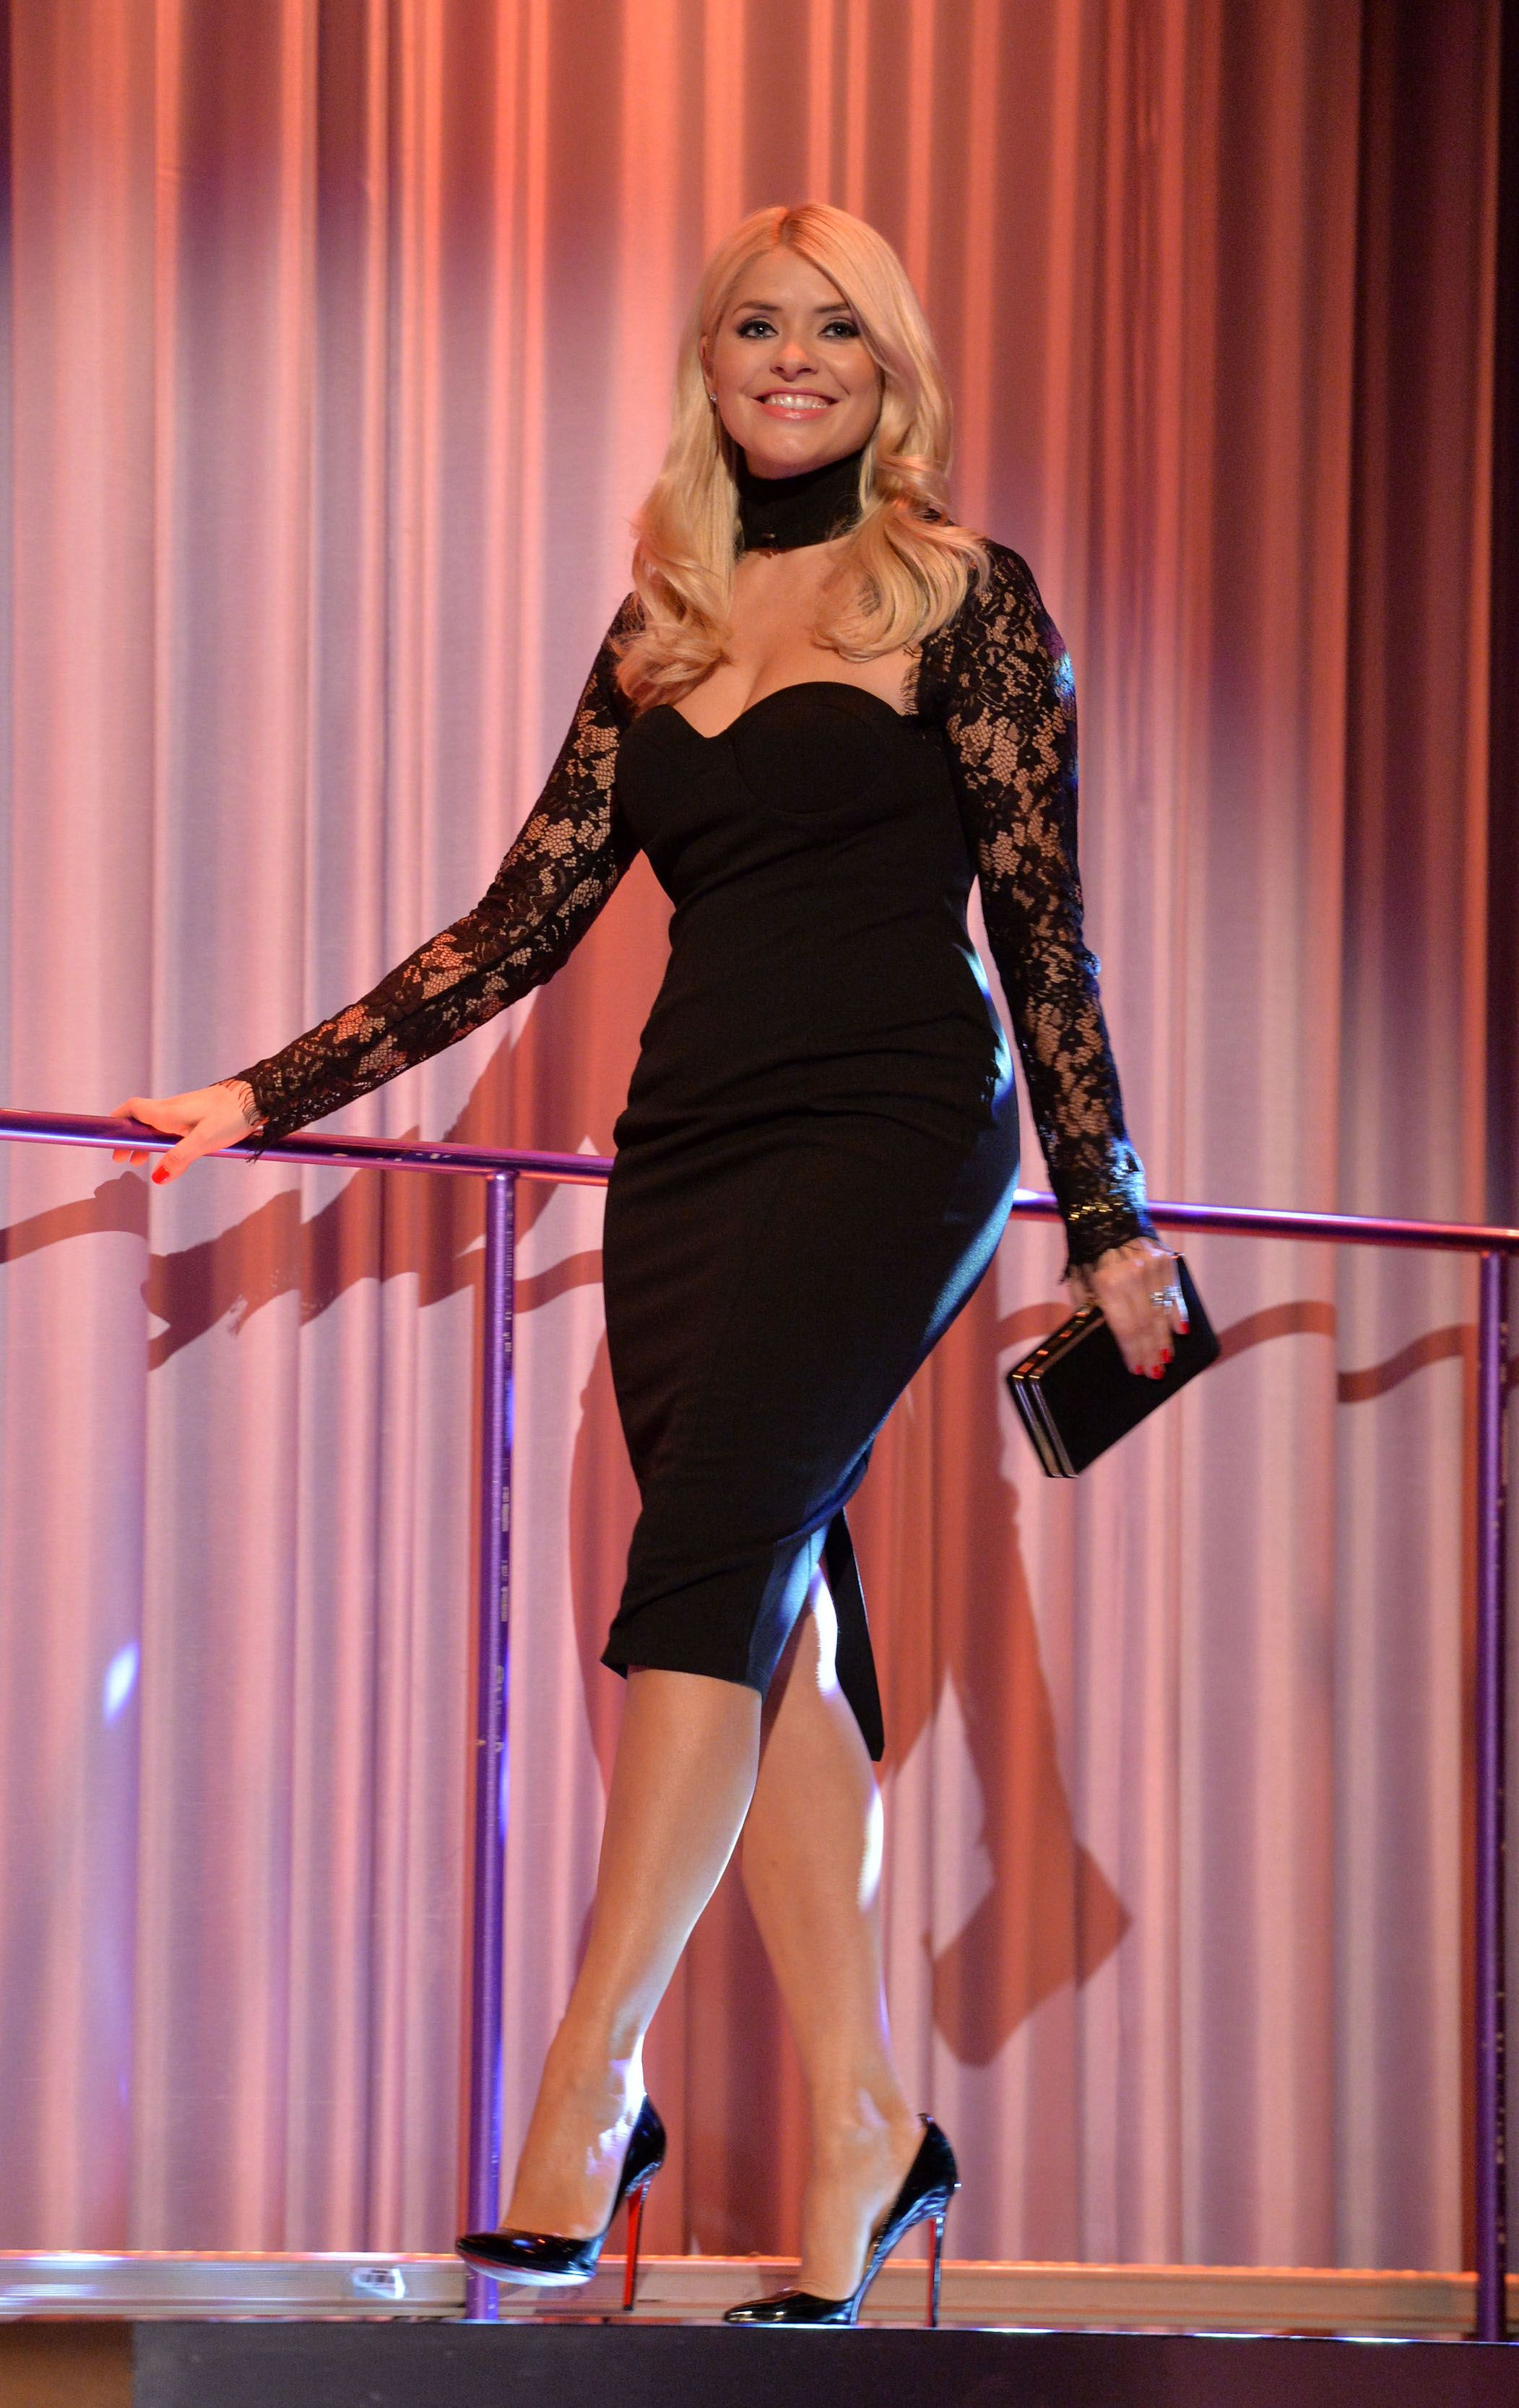 f6c99925e4d Image result for holly willoughby legs